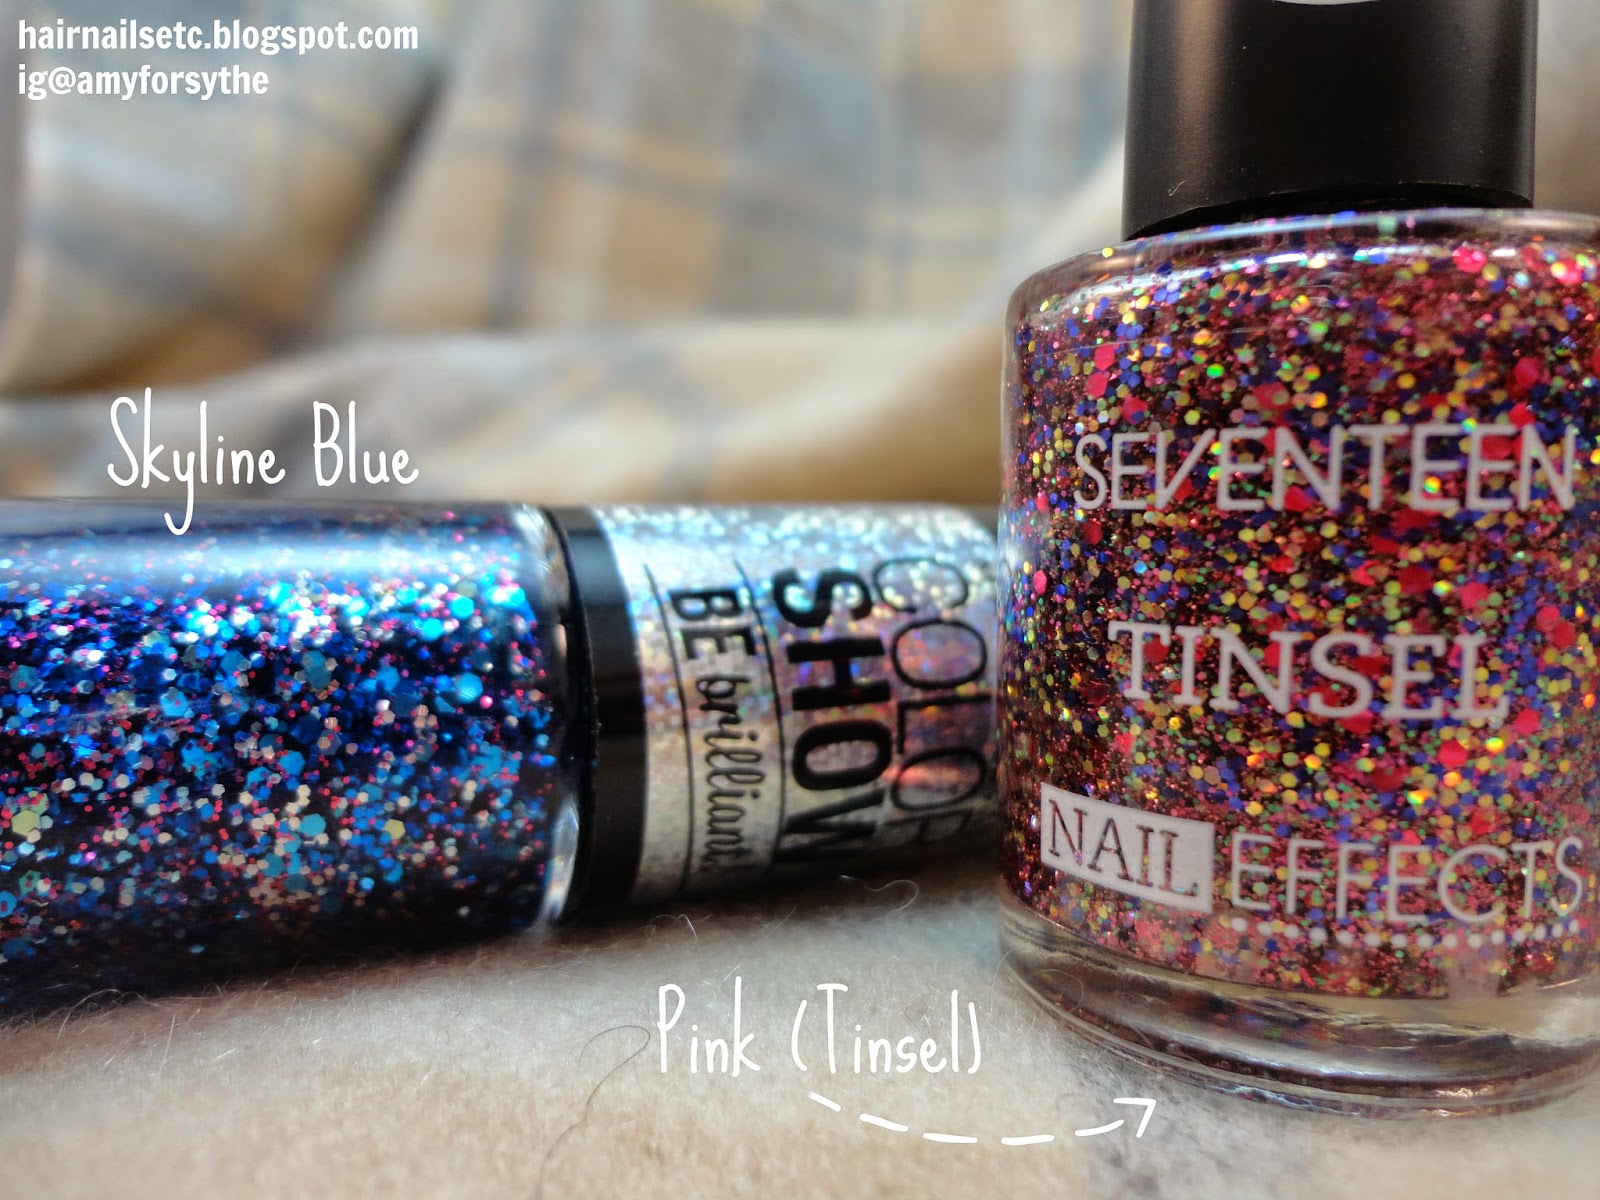 Boots UK Beauty Haul - Maybelline Be Brilliant Nail Polish in Skyline Blue, Seventeen Tinsel Nail Effects Pink